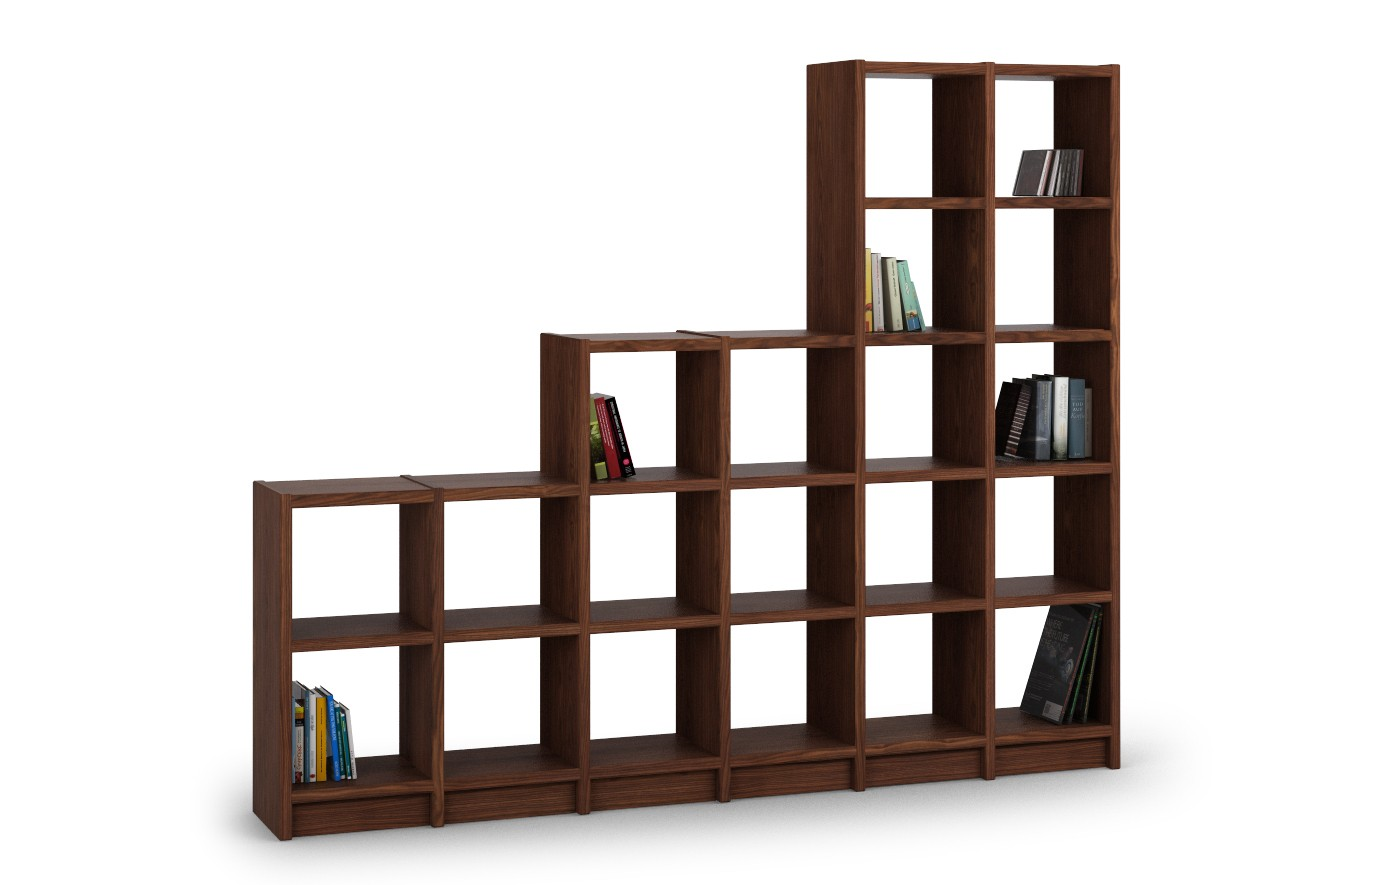 vcm regal dvd cd schrank rack m bel aufbewahrung holzregal. Black Bedroom Furniture Sets. Home Design Ideas